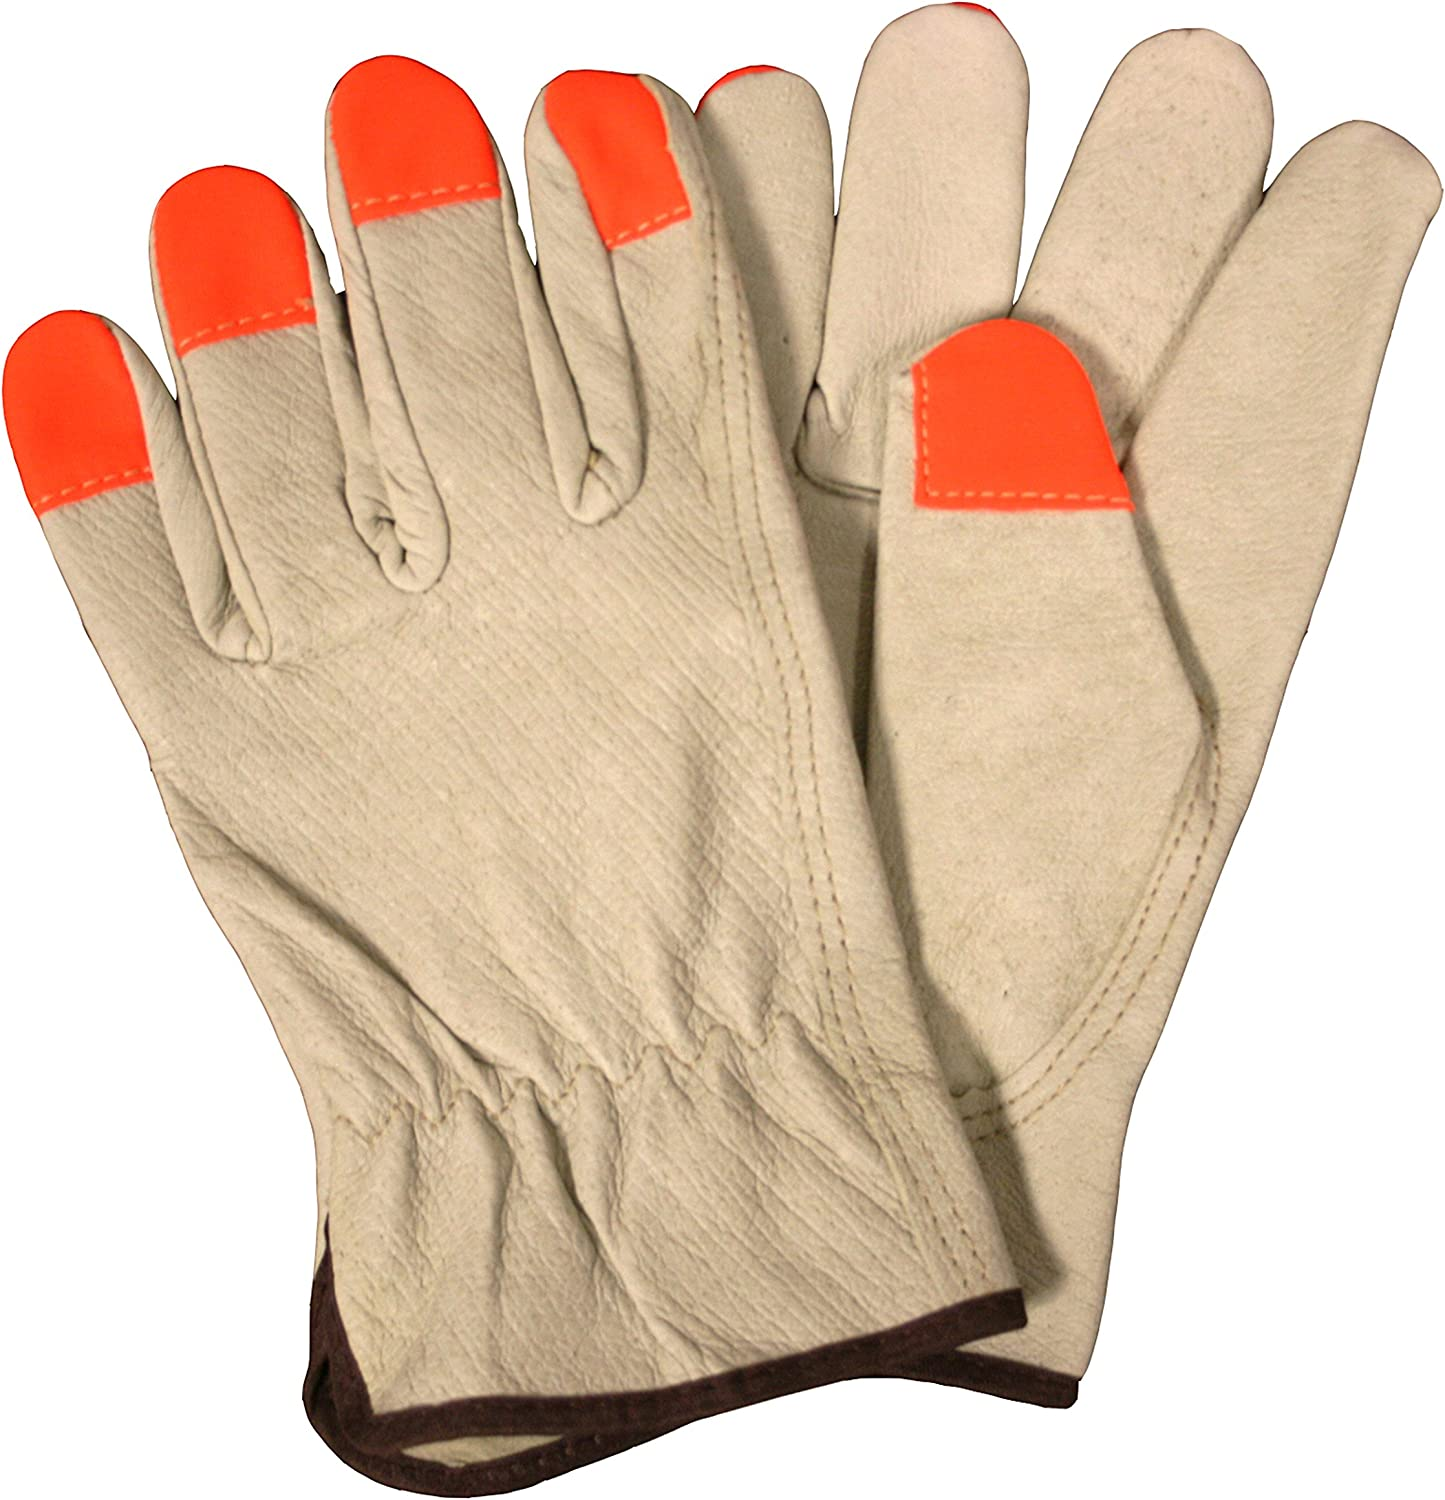 XX LARGE CORDOVA GLOVES LEATHER WINTER COLD WEATHER INSULATED MEN'S